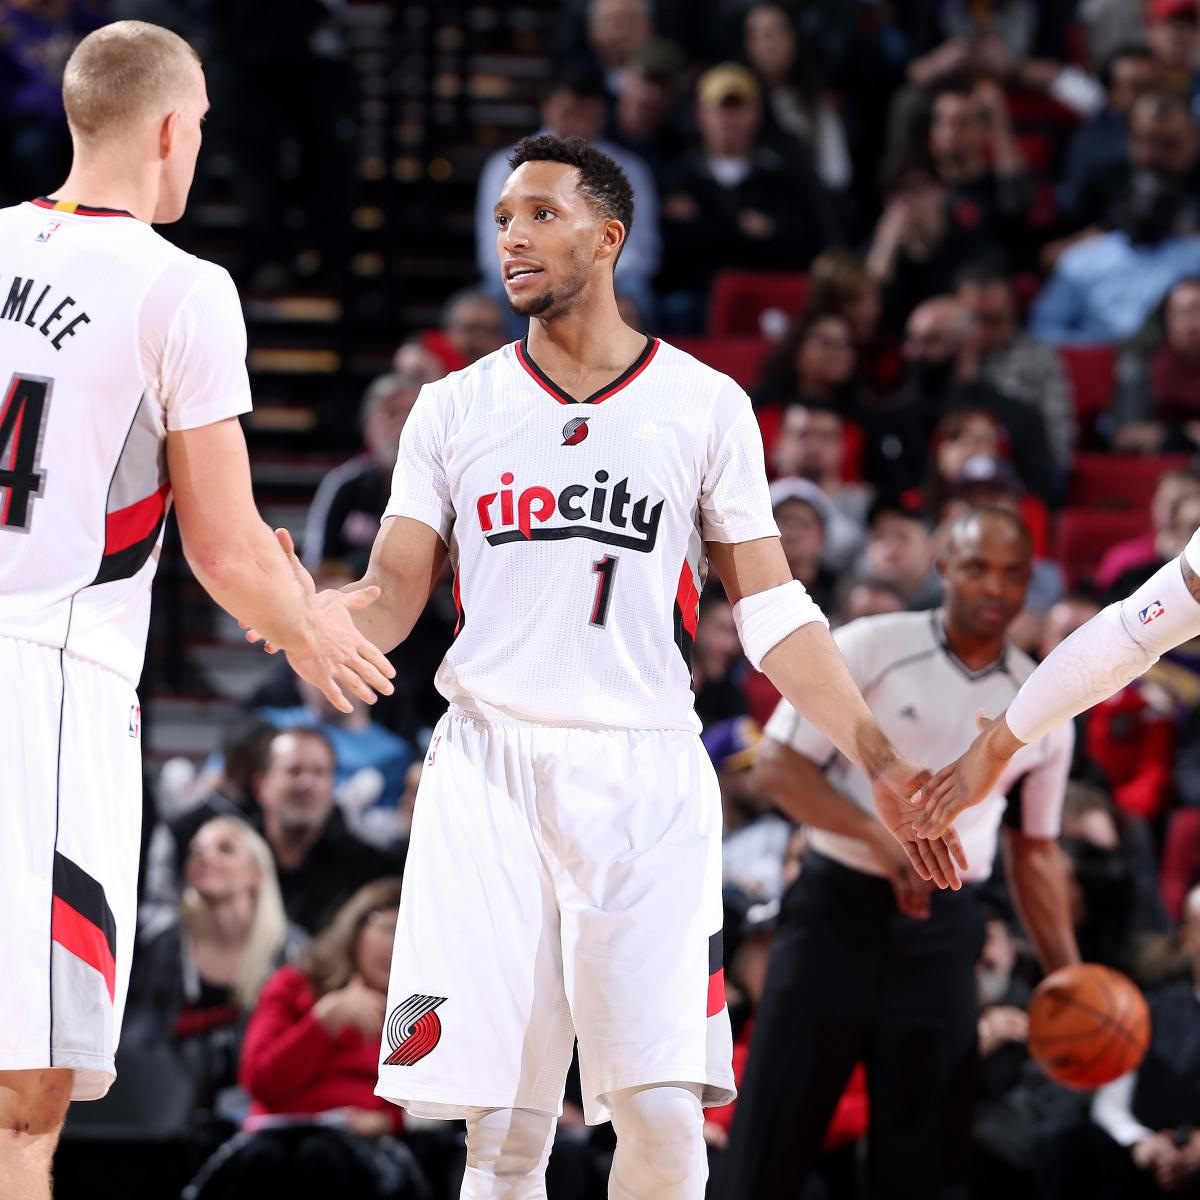 Blazers Score: Lakers Vs. Trail Blazers: Score, Highlights, Reaction From